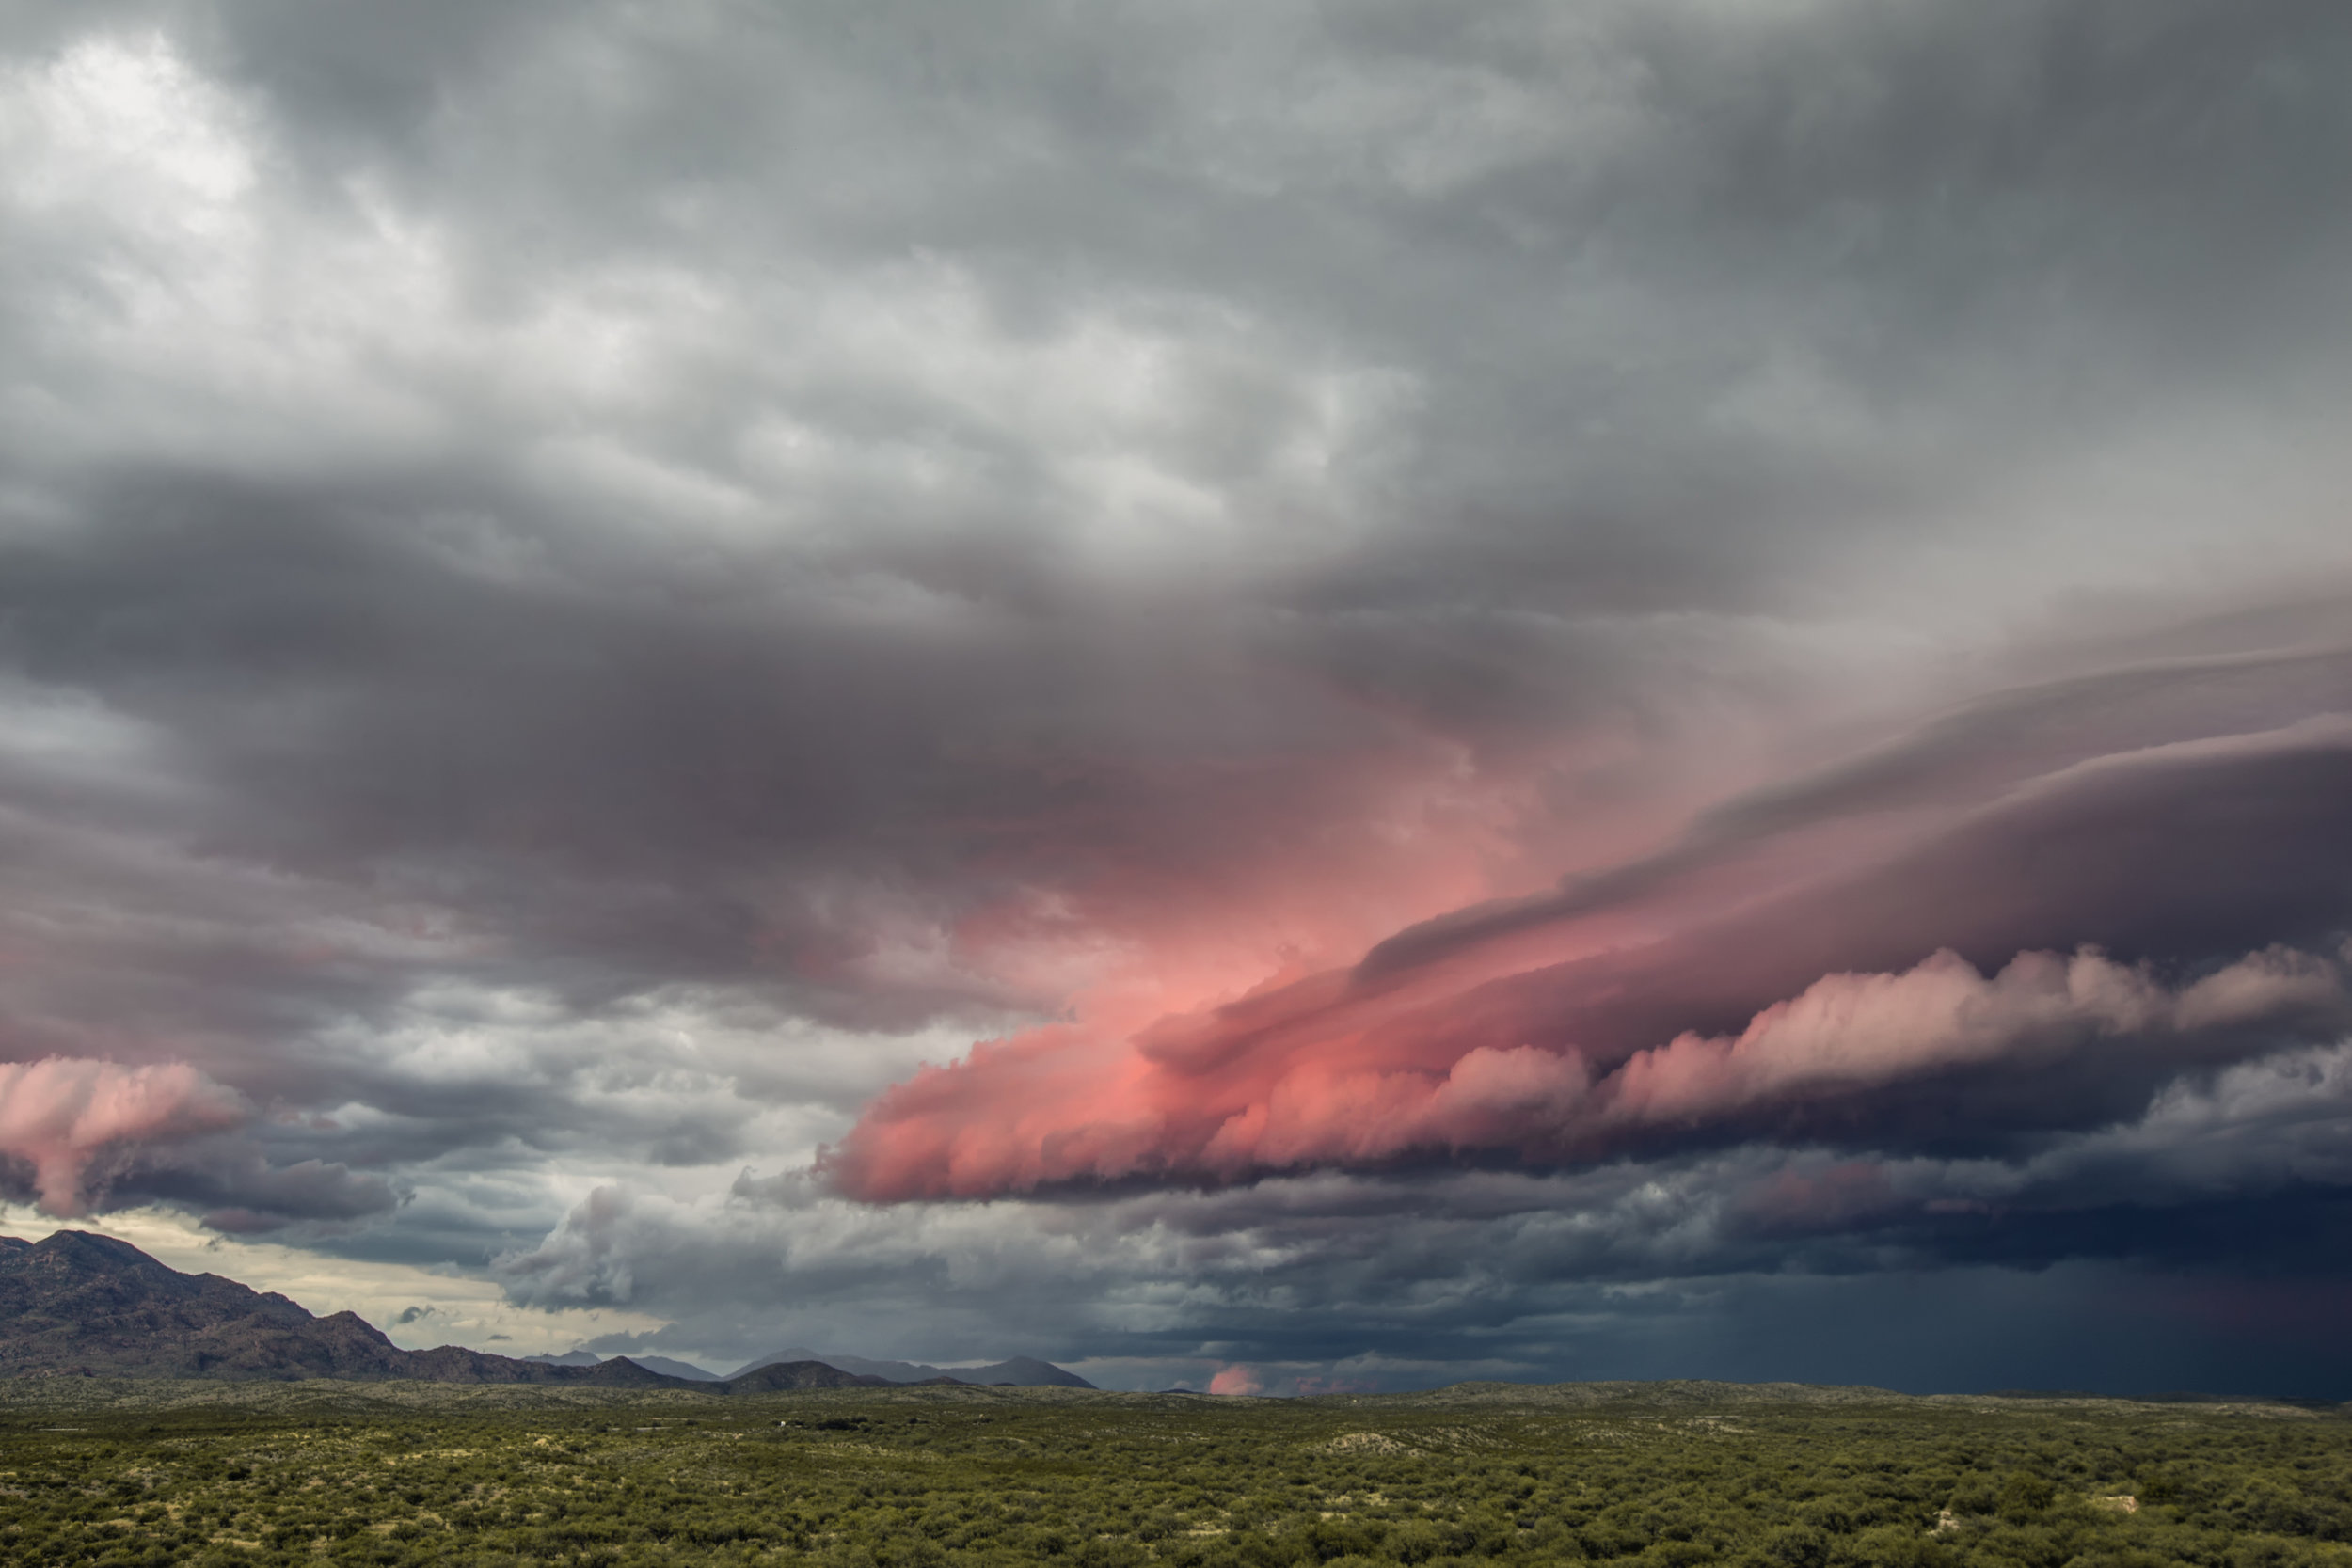 Sunset lit Shelf Cloud - Vail, Arizona July 30, 2017.jpg